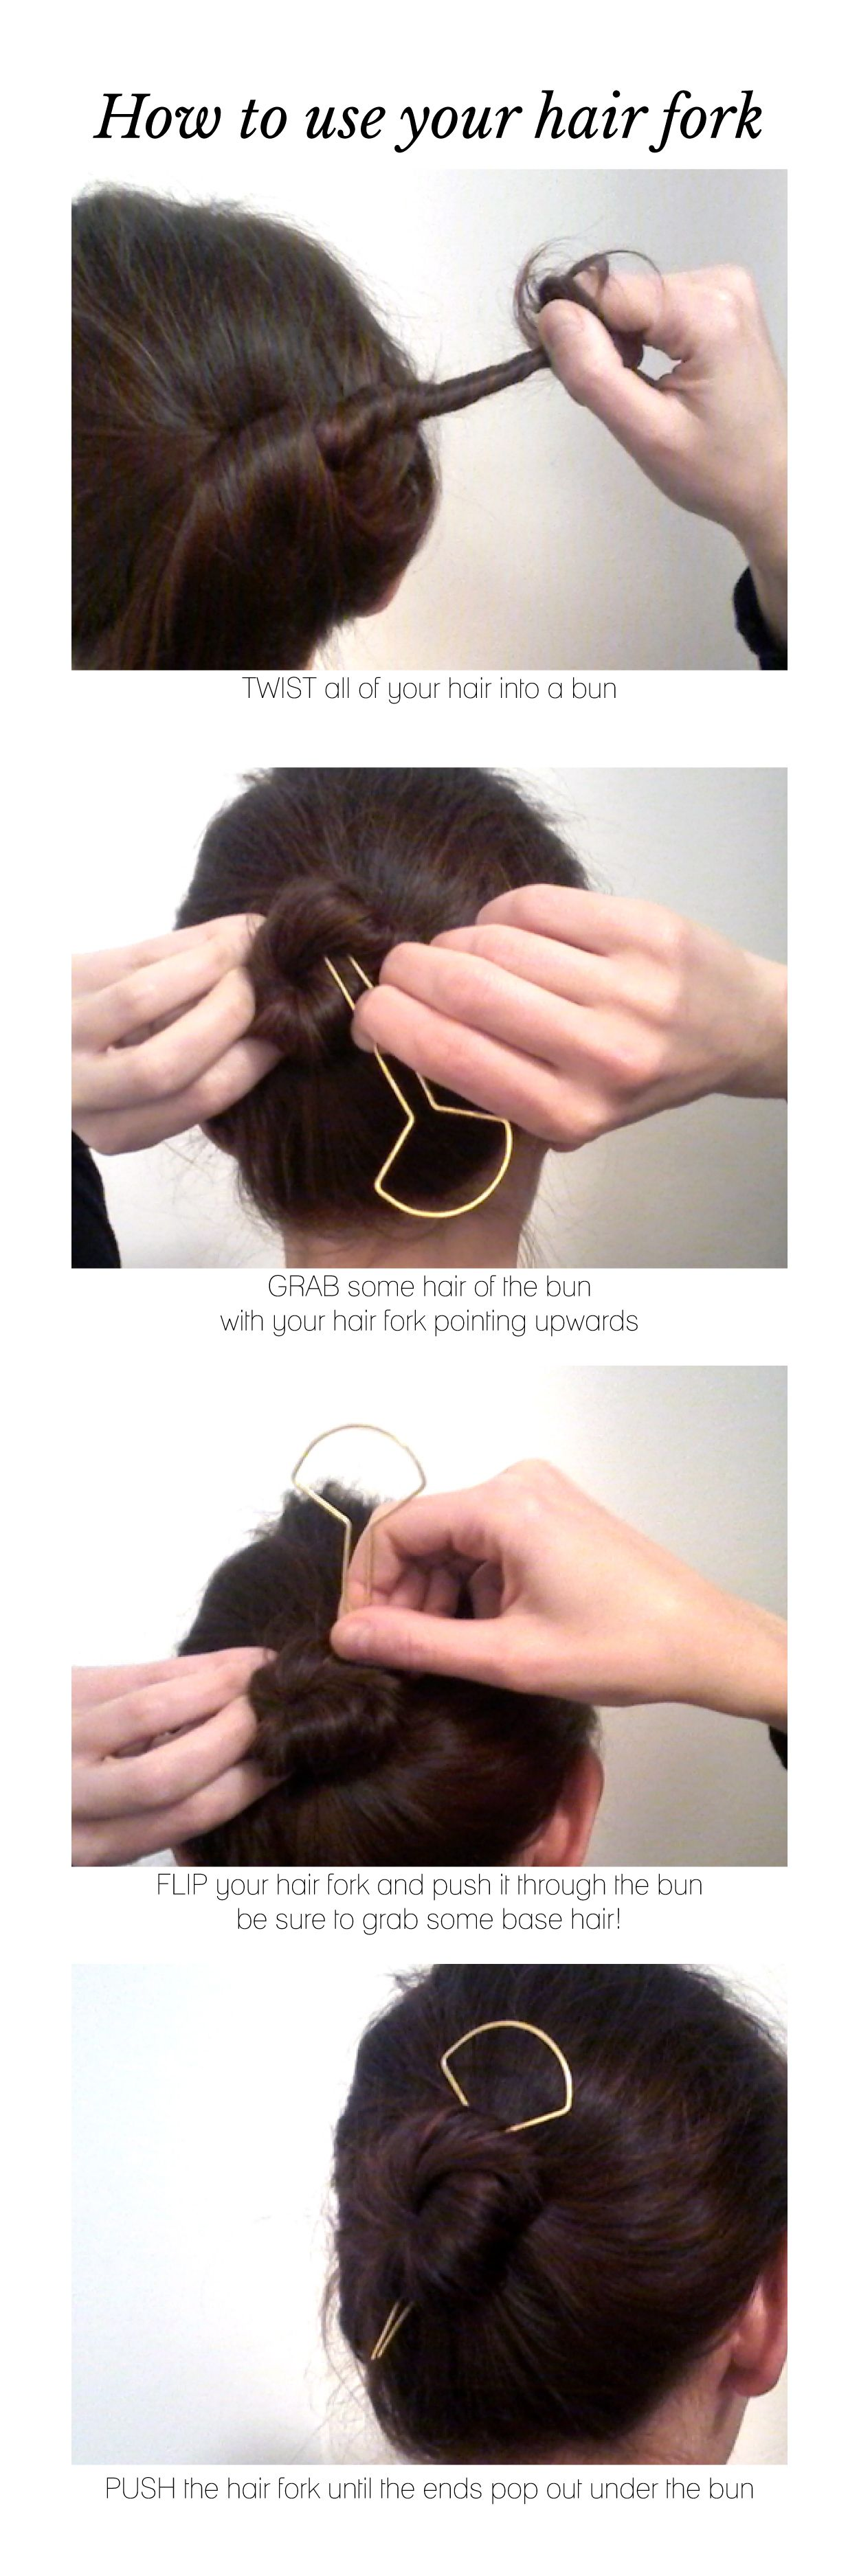 Faqs natural braided ponytail and hair style